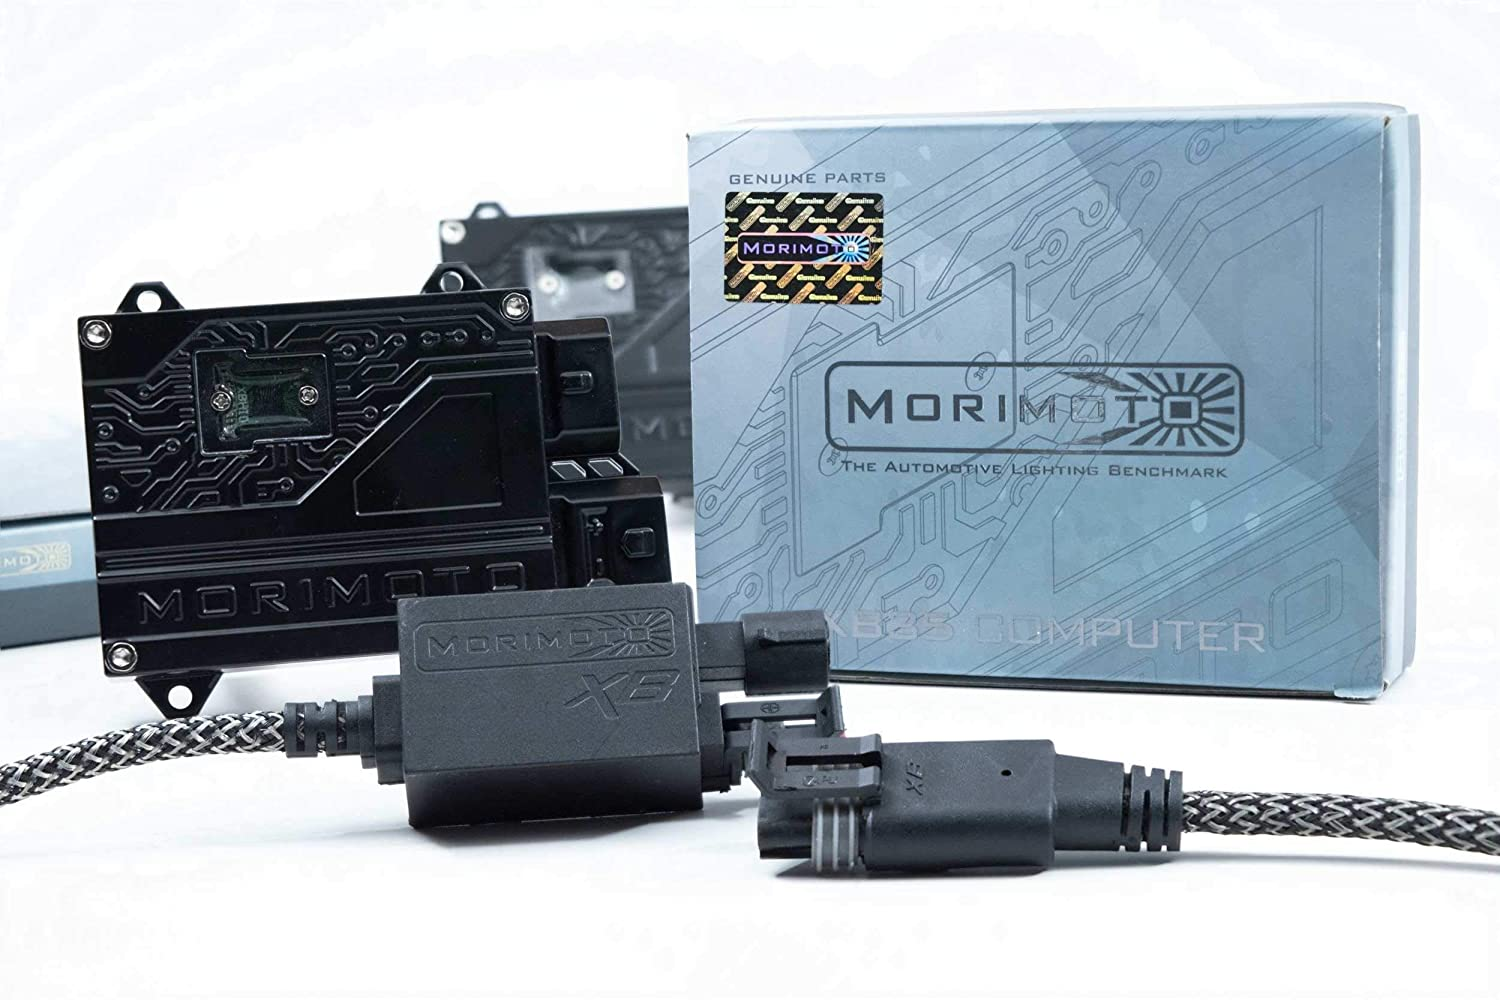 H11 Morimoto Elite HID Kit System With XB55 50W Ballasts and XB35 H11 6500K Bulbs